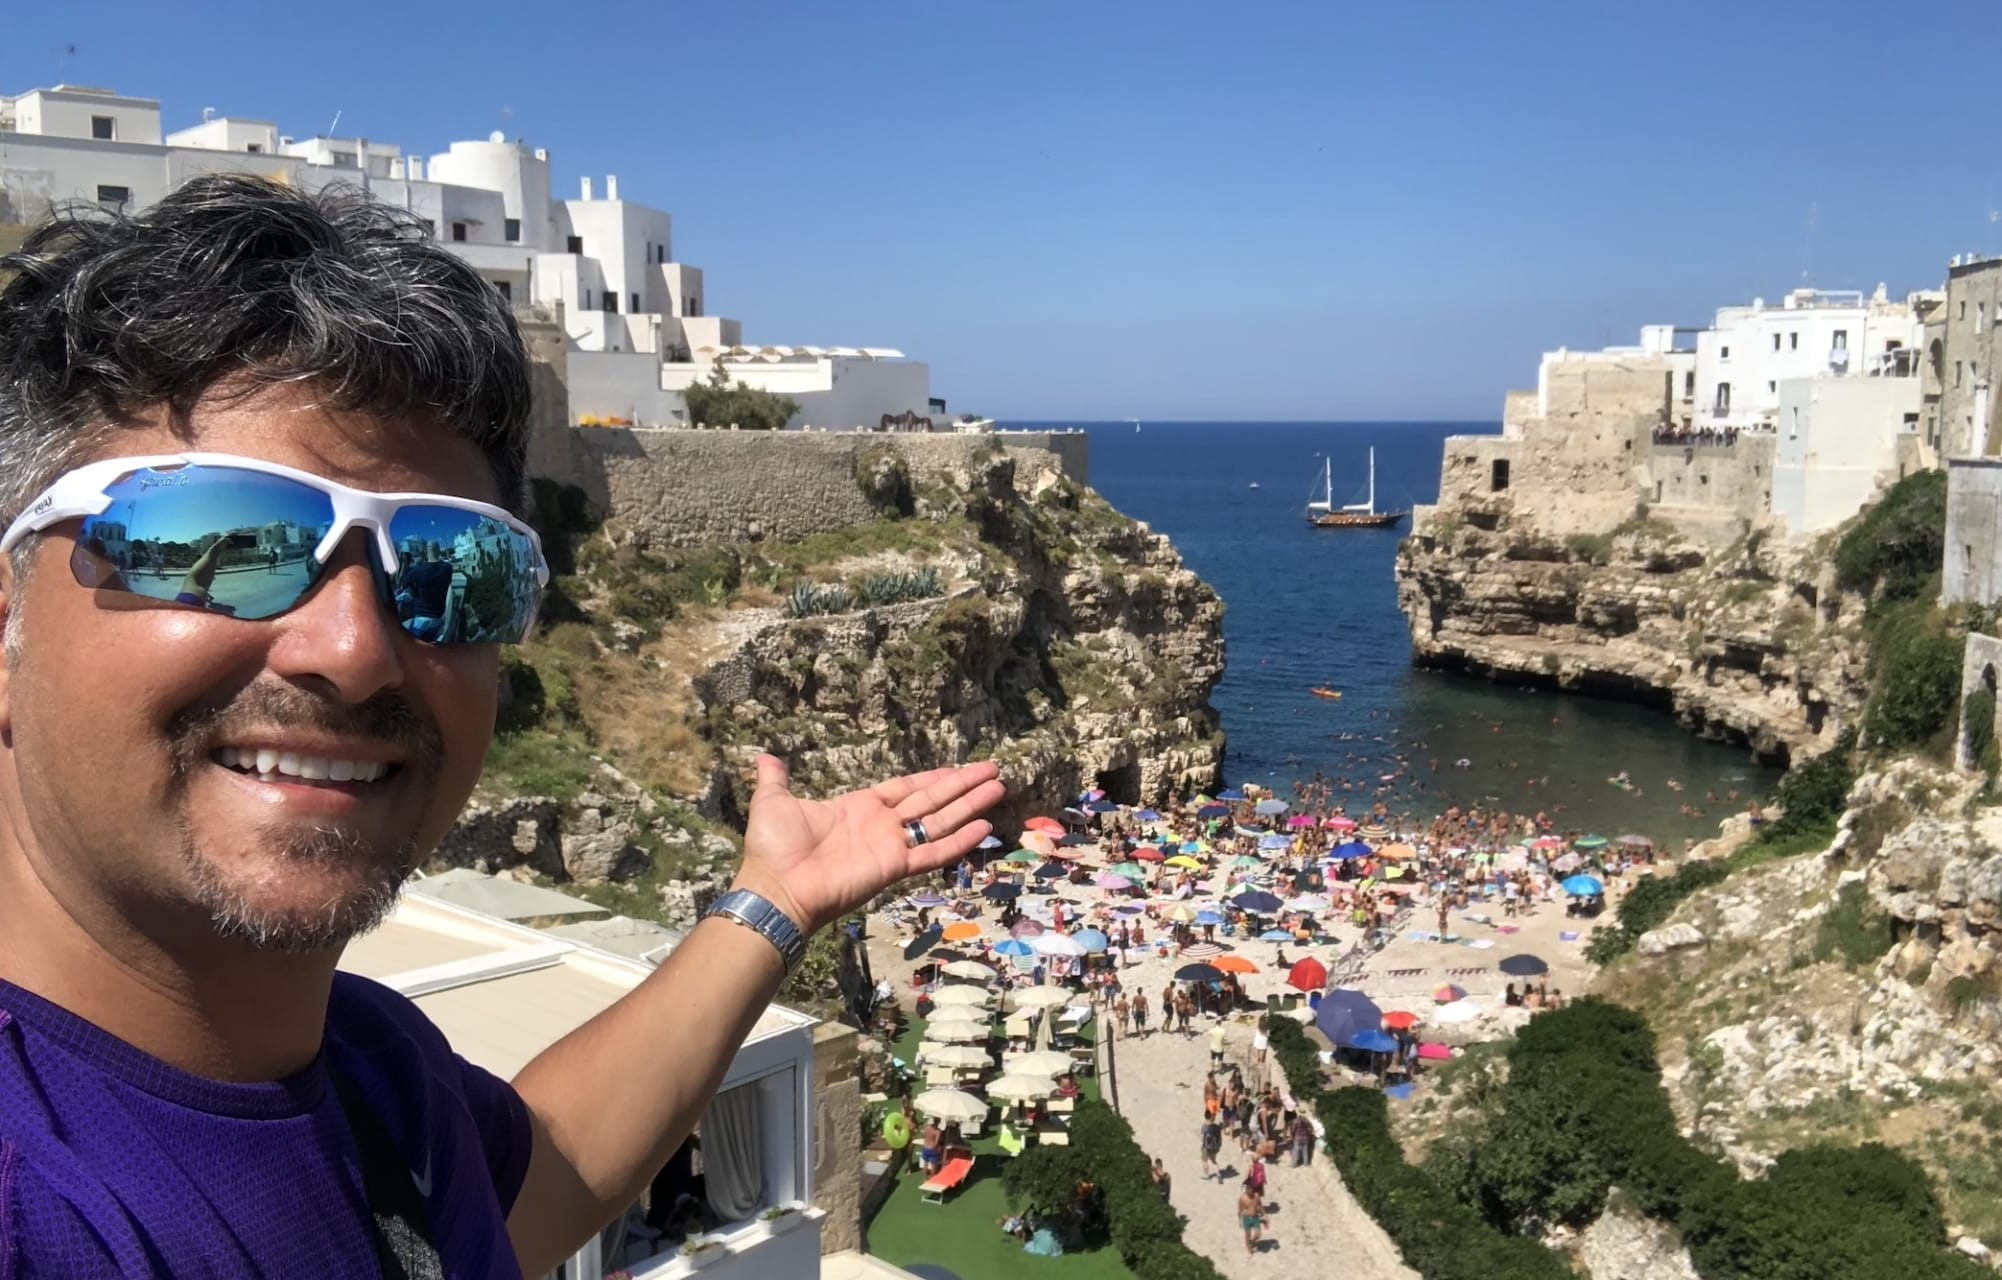 Puglia - The Ancient Town of Polignano a Mare Perched on the Rocks of the Adriatic Sea